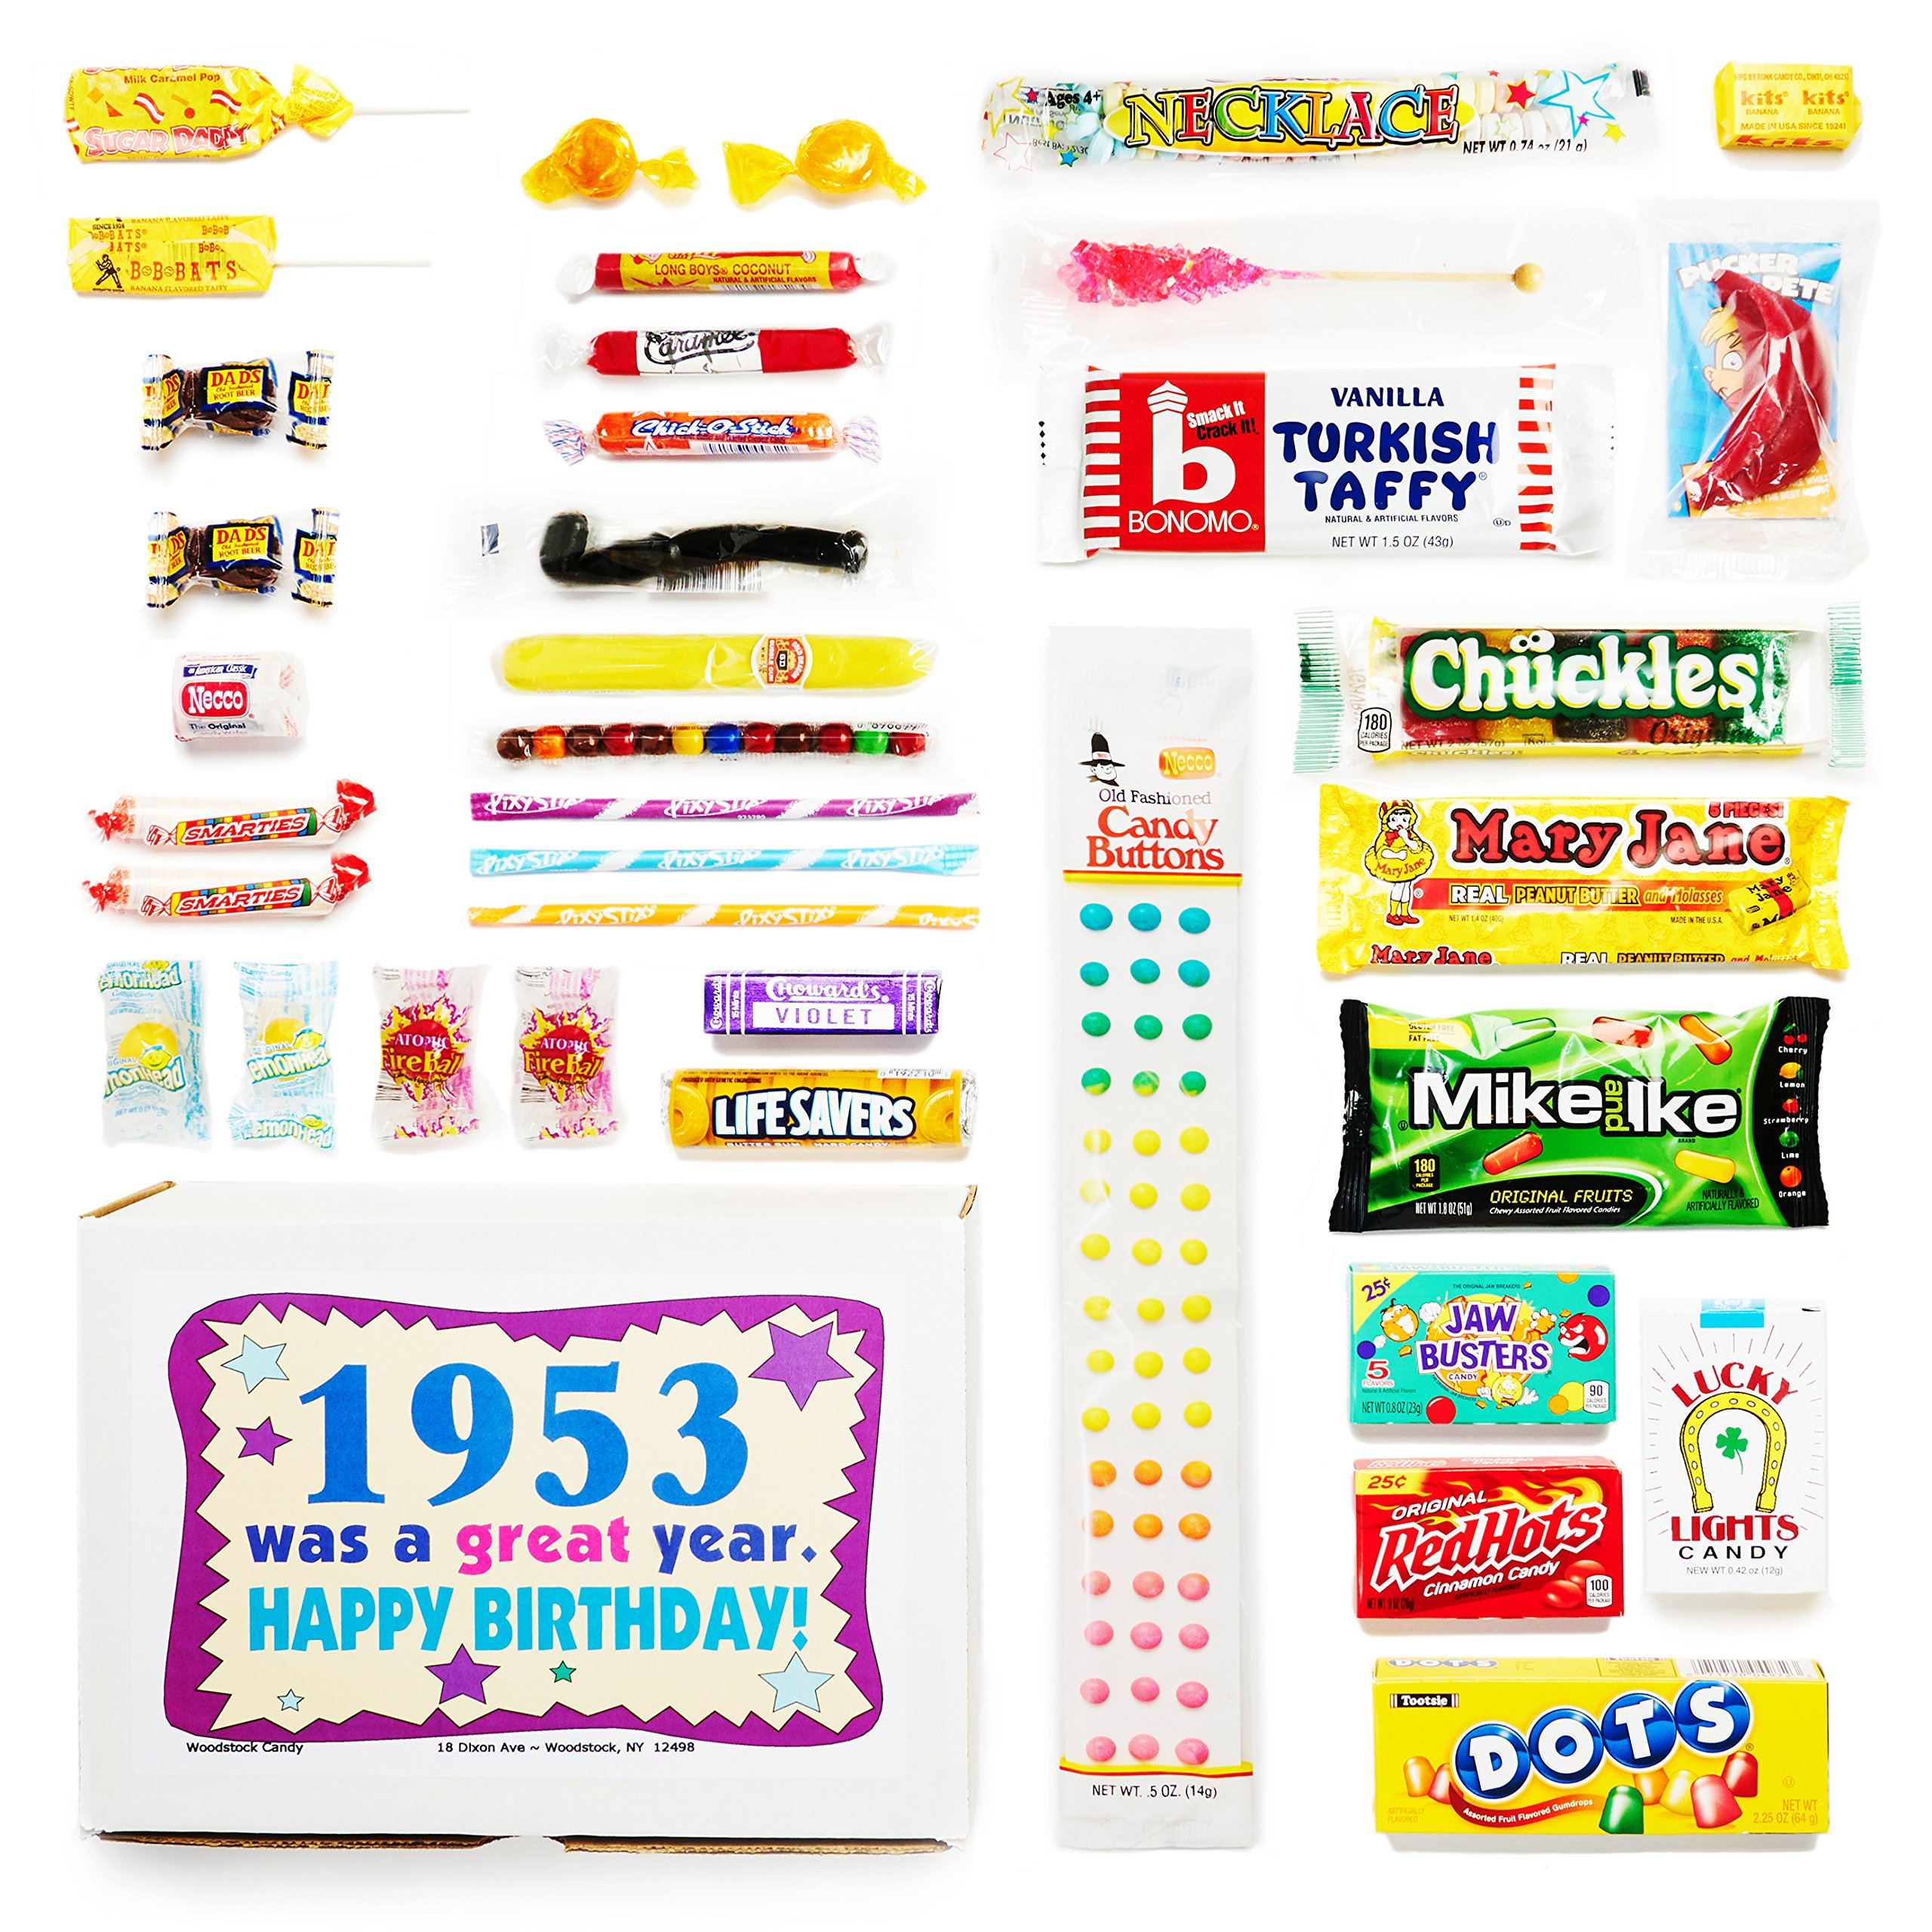 Woodstock Candy 1953 65th Birthday Gift Box Nostalgic Retro Mix From Childhood For 65 Year Old Man Or Woman Born Jr Chocolate Gifts